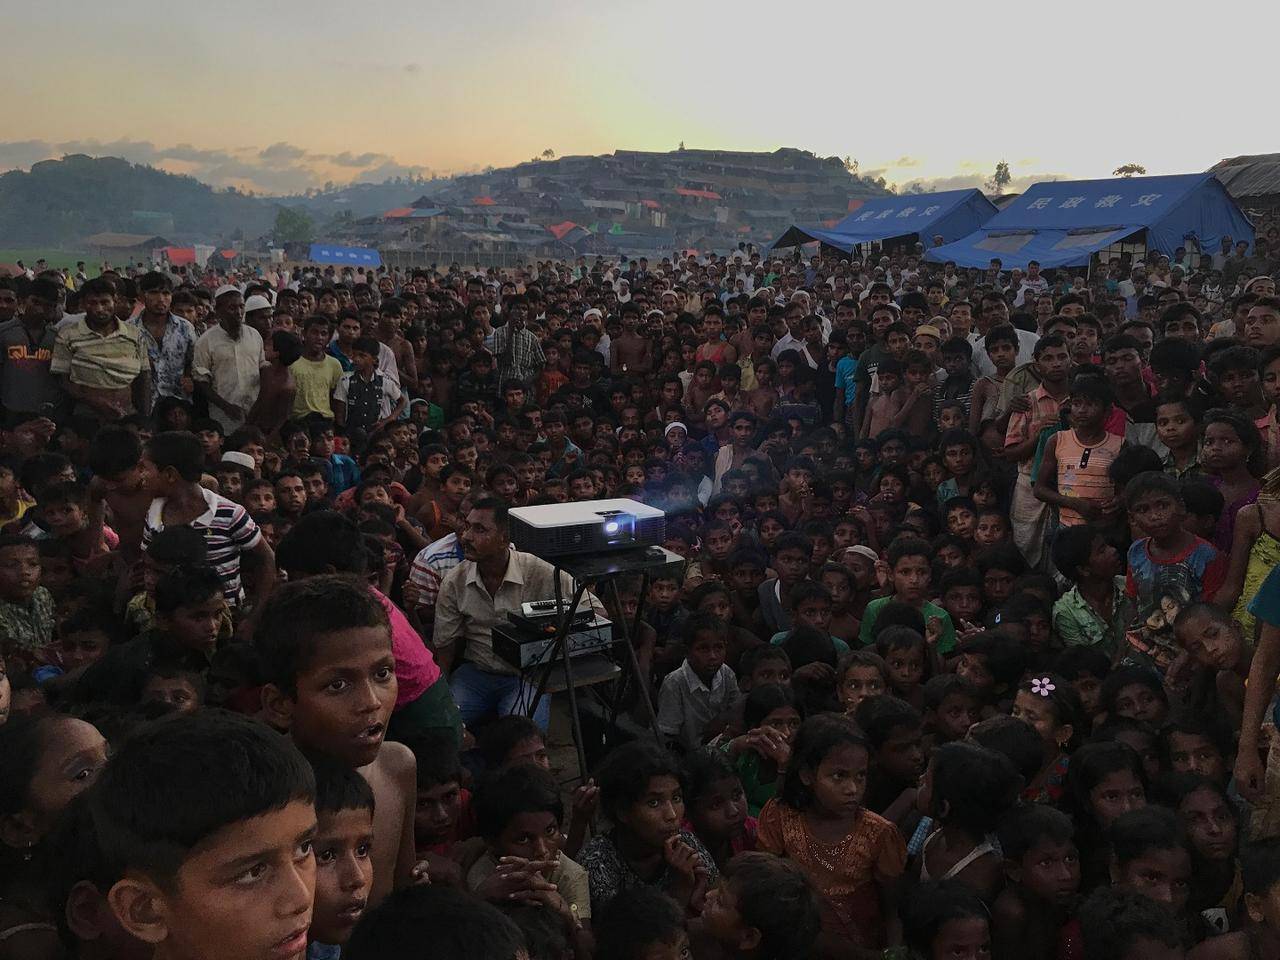 The Grand Prize winner of the 2018 iPhone Photography Awards shows a group of Rohingyan children watching an awareness film about health and sanitation near a refugee camp outside Ukhiya, Bangladesh